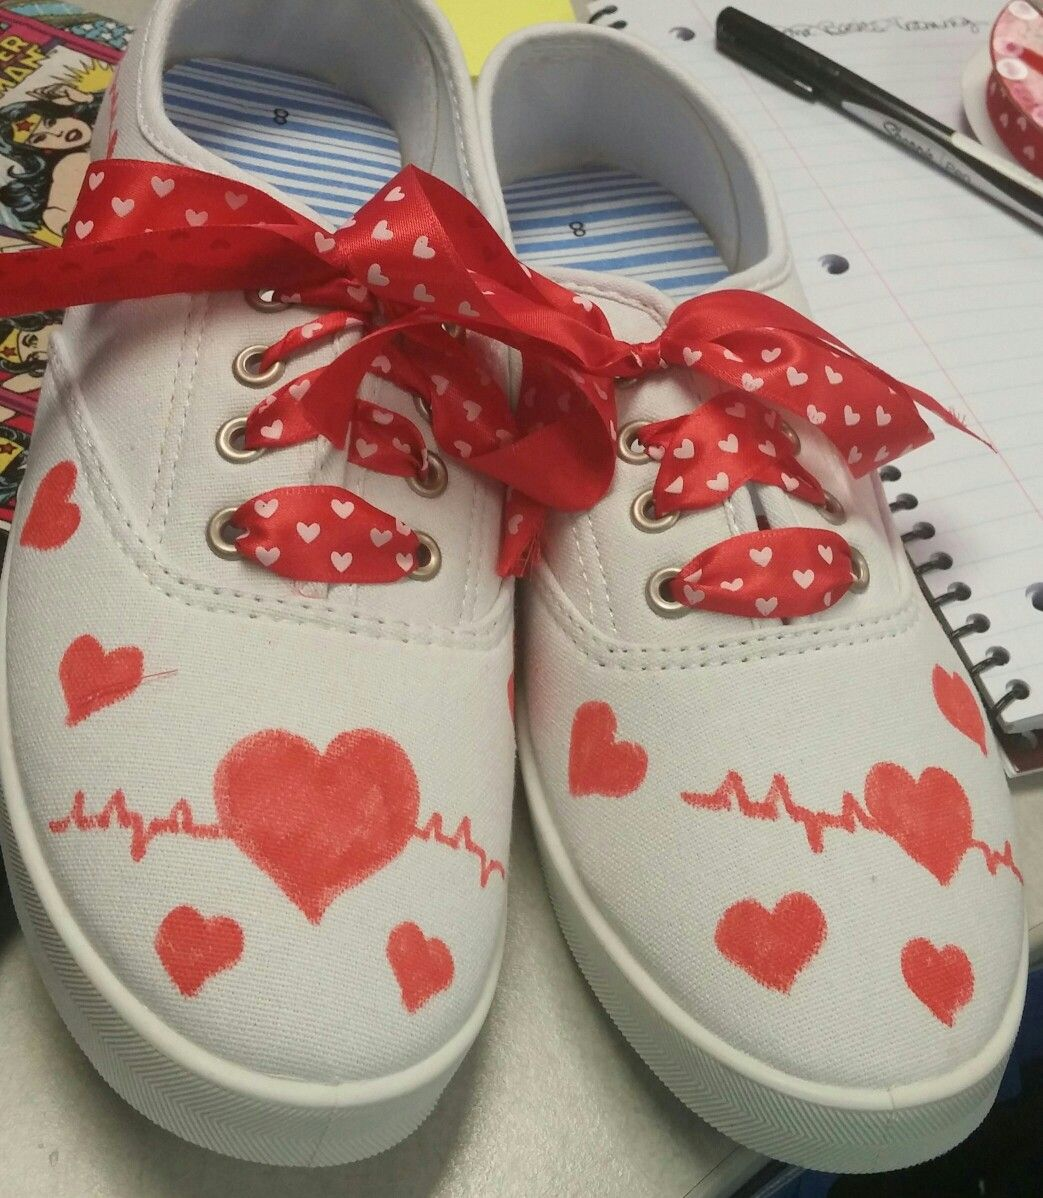 Shoes I Decorated For Go Red And Heart Disease Awareness